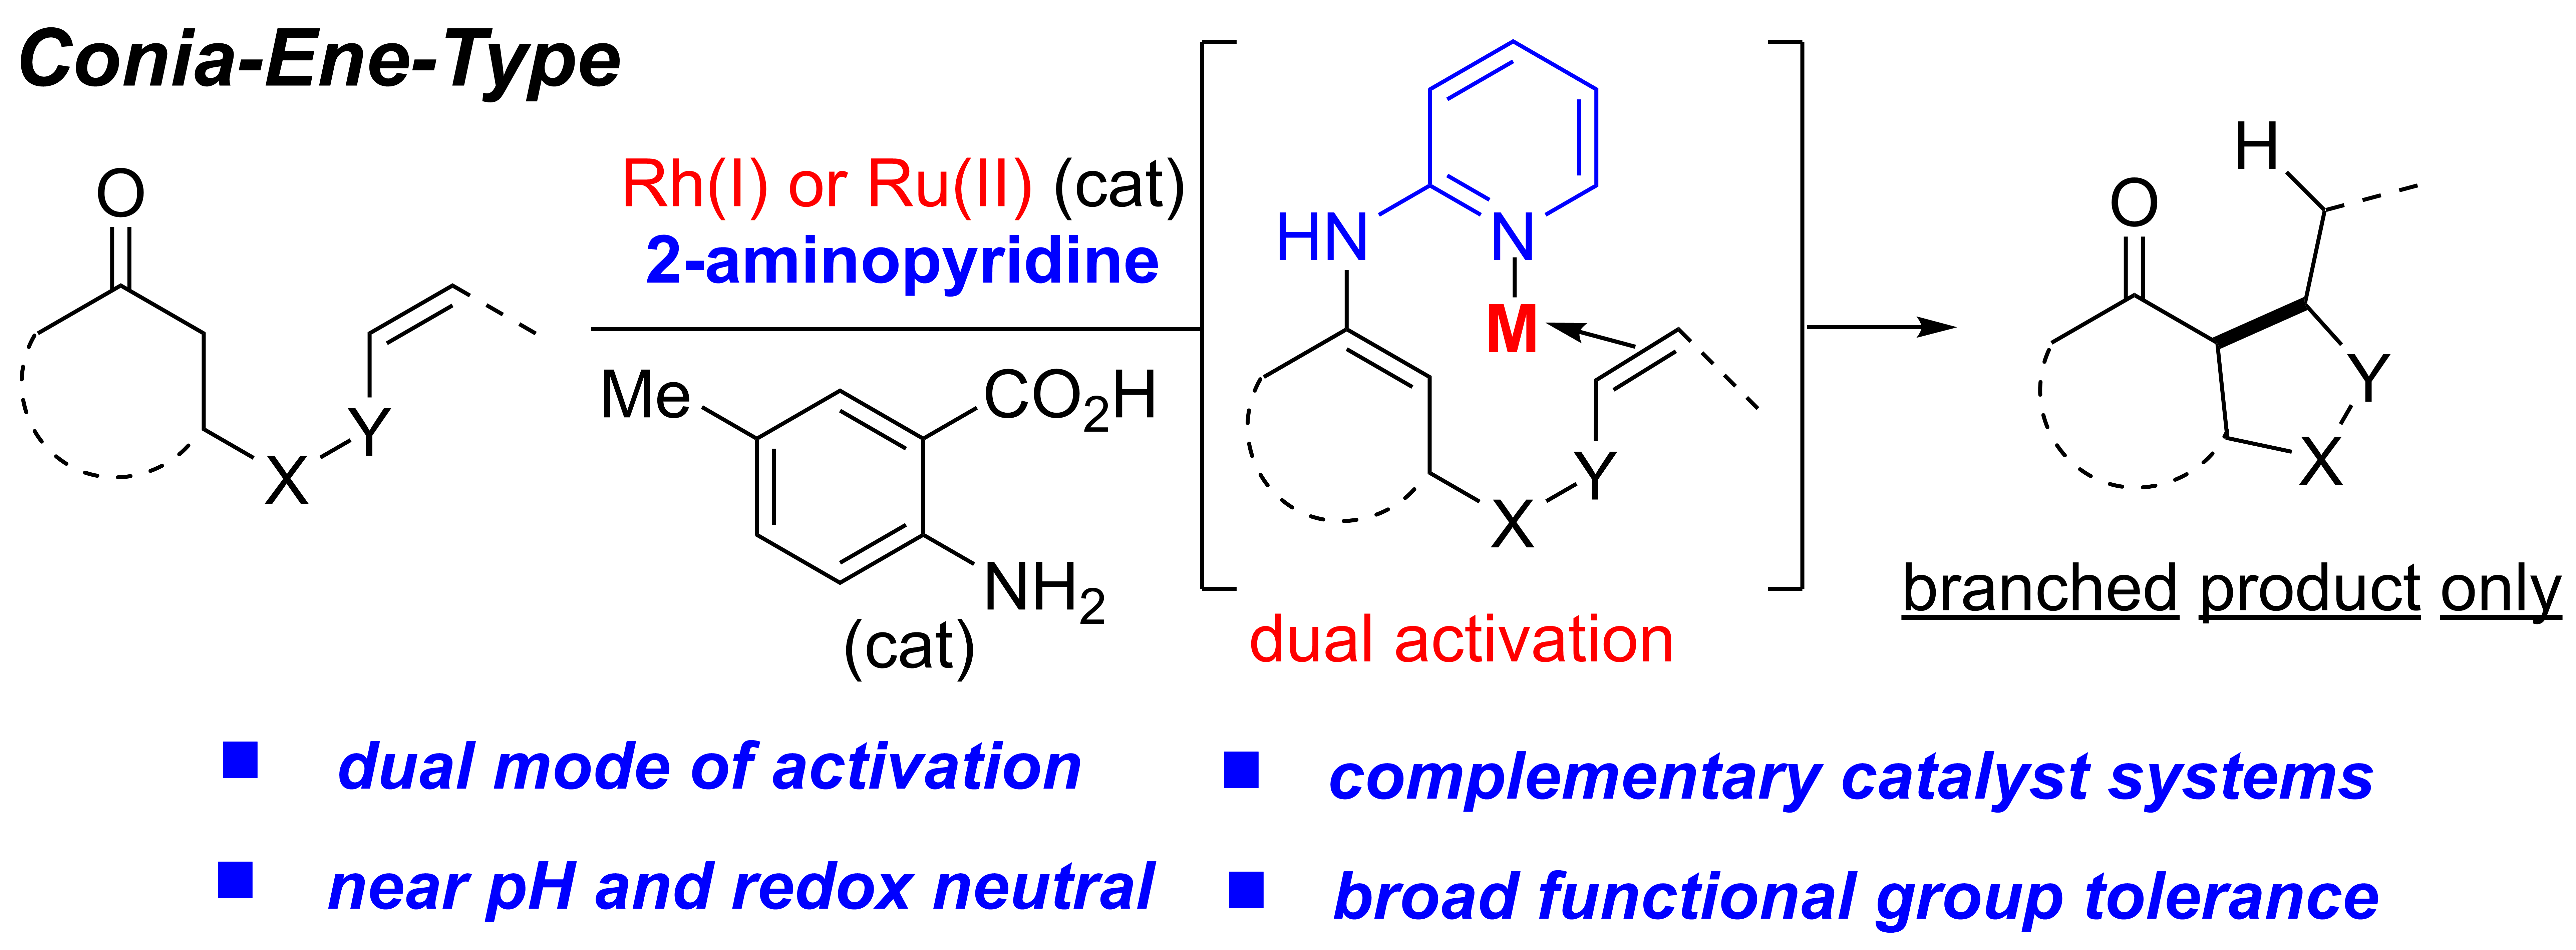 reactivation of a ruthenium based olefin metathesis catalyst Synthesis, determination, and catalytic measurement of ruthenium indenylidene complexes used in olefin metathesis  it is expected that c 51 h 76 cl 2 p 2 ru is the better catalyst as it has bulkier, more readily  pappenfus et al synthesis and catalytic performance of ruthenium carbene complexes for olefin metathesis: a microscale.